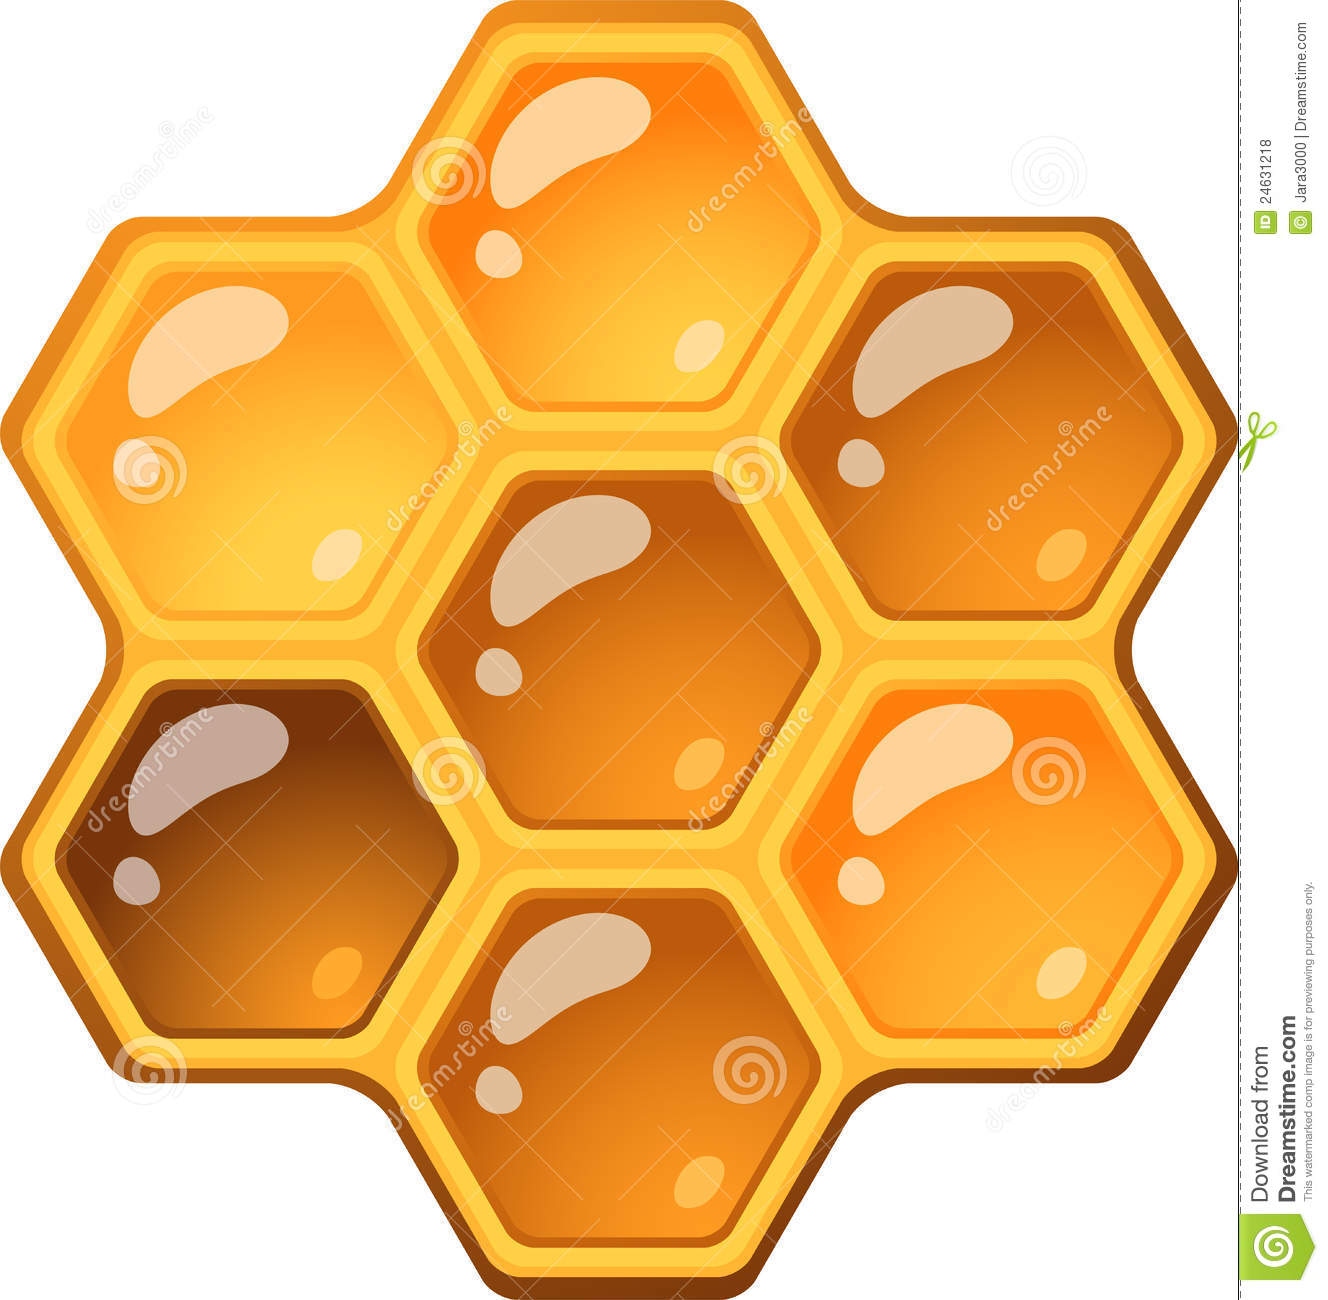 Beeswax Stock Illustrations.